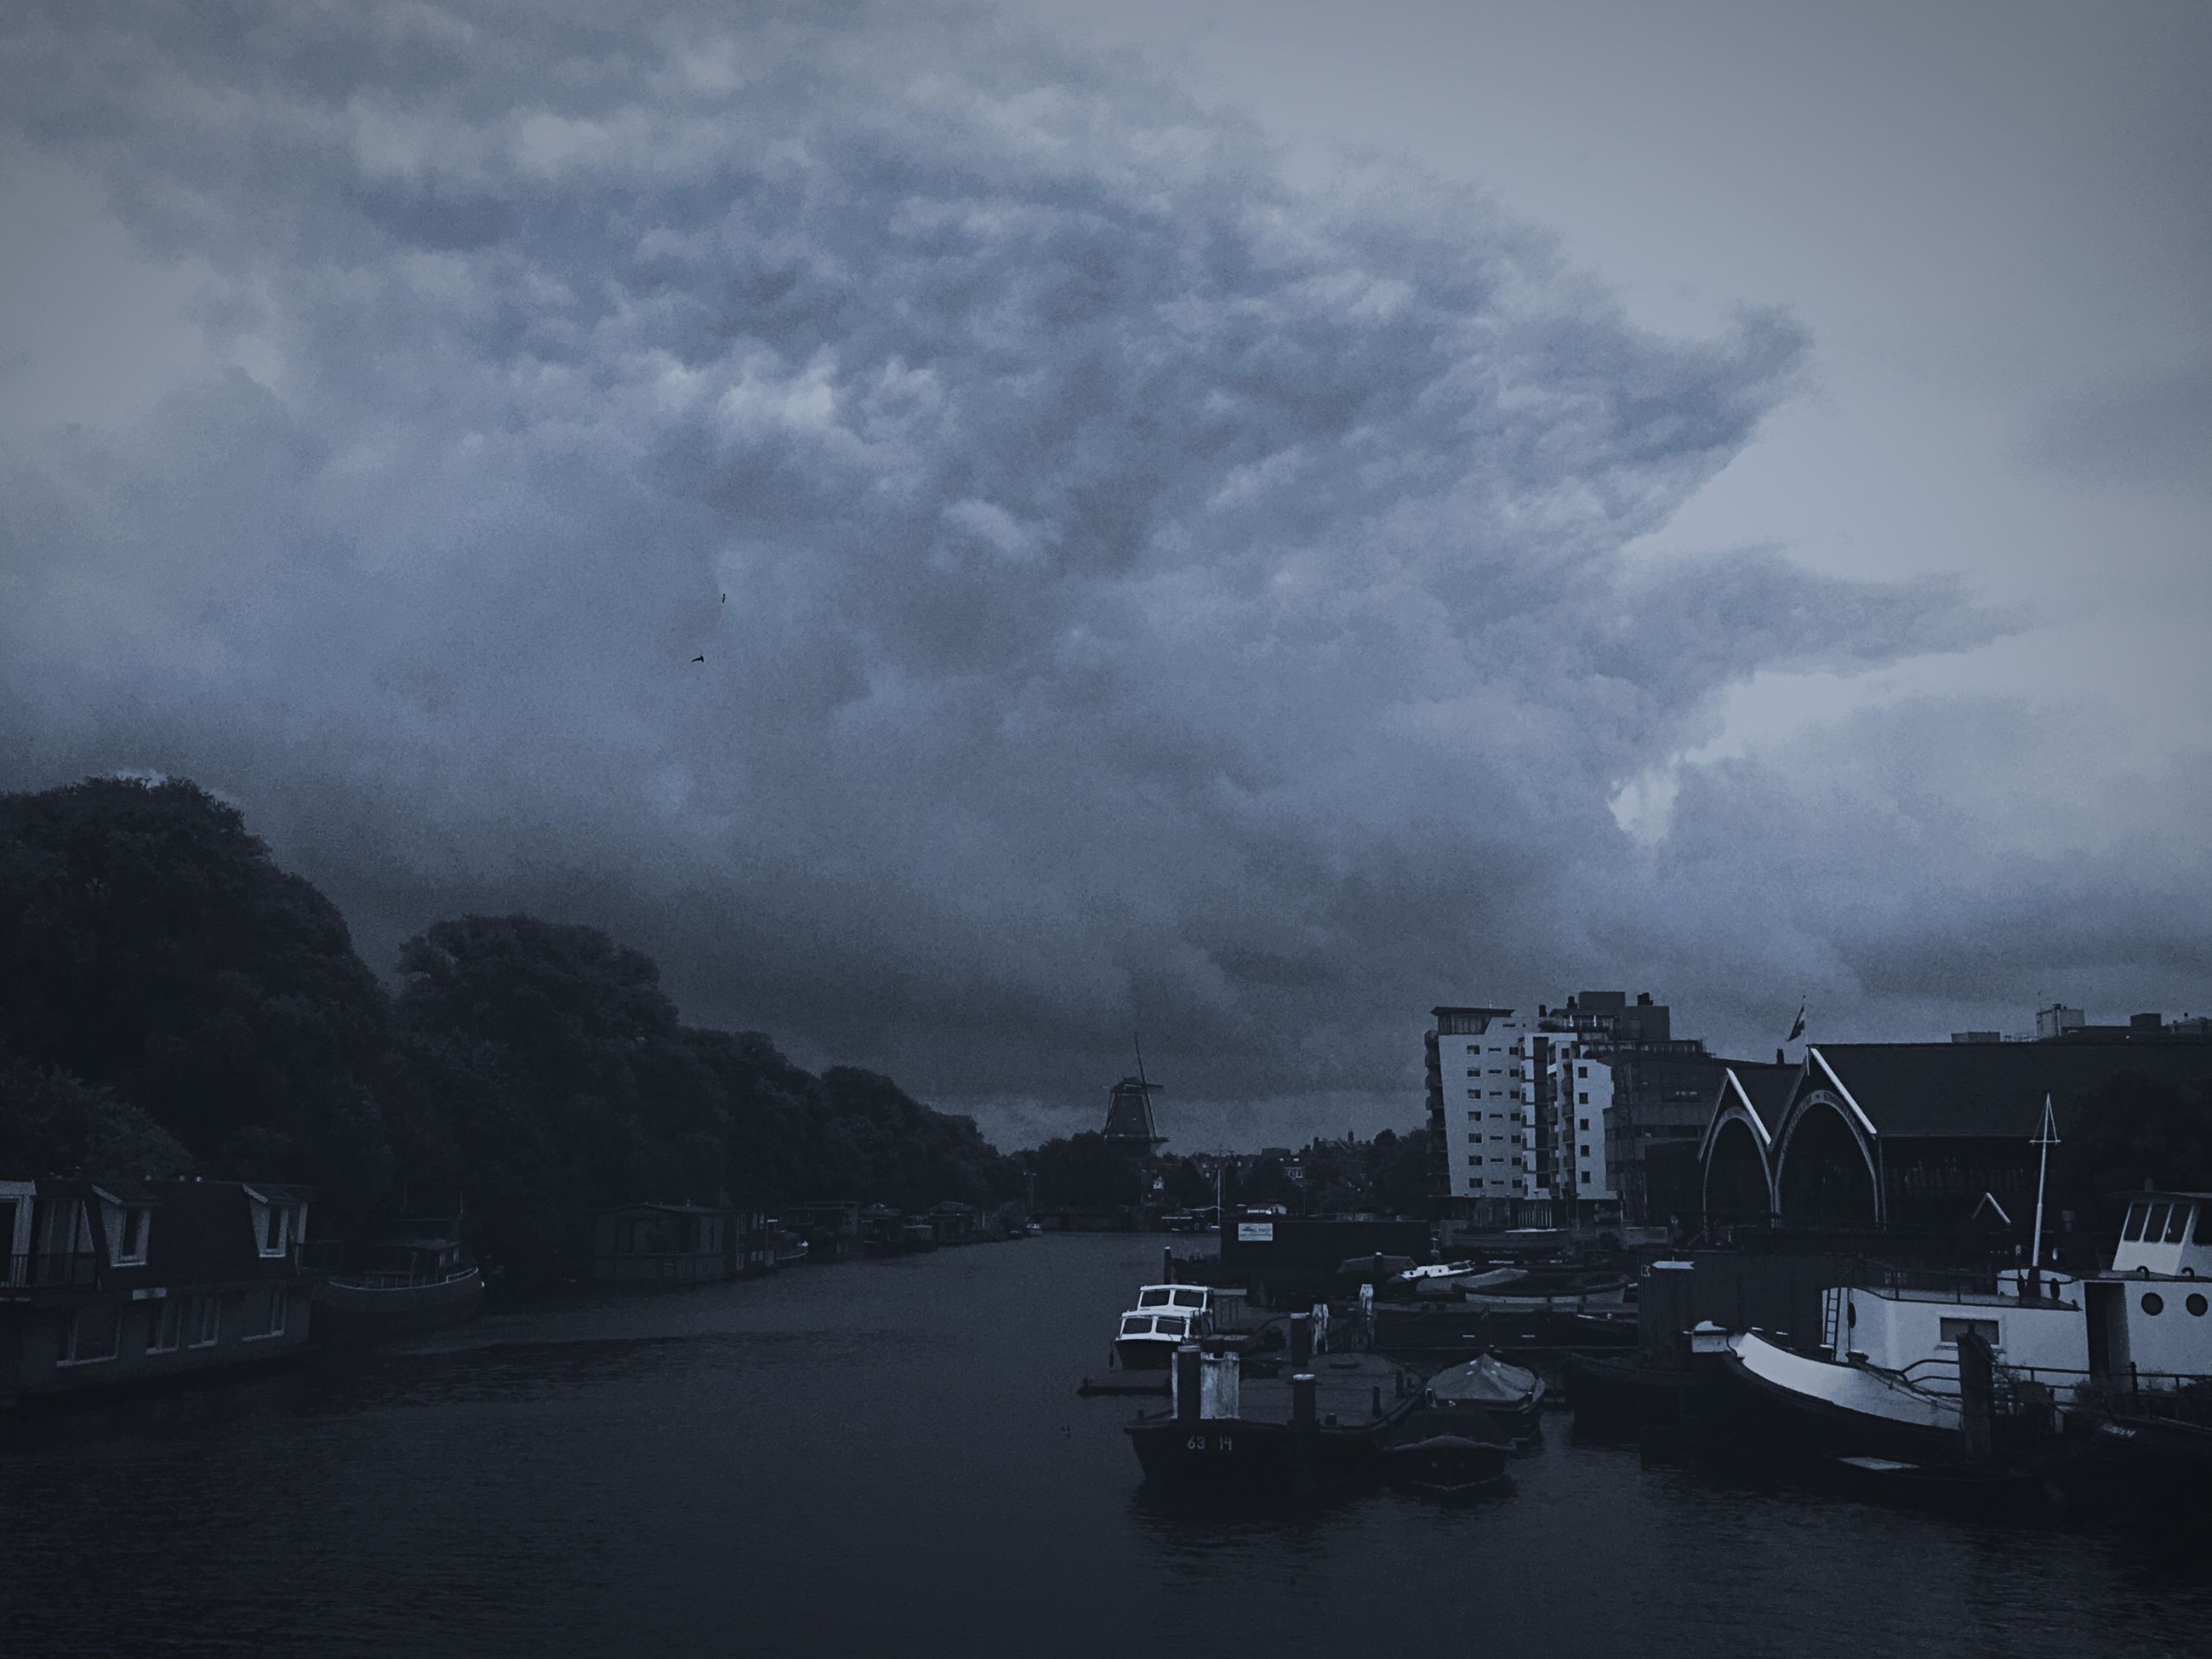 water, building exterior, sky, transportation, waterfront, architecture, nautical vessel, built structure, cloud - sky, mode of transport, cloudy, river, city, weather, boat, overcast, storm cloud, moored, dusk, nature